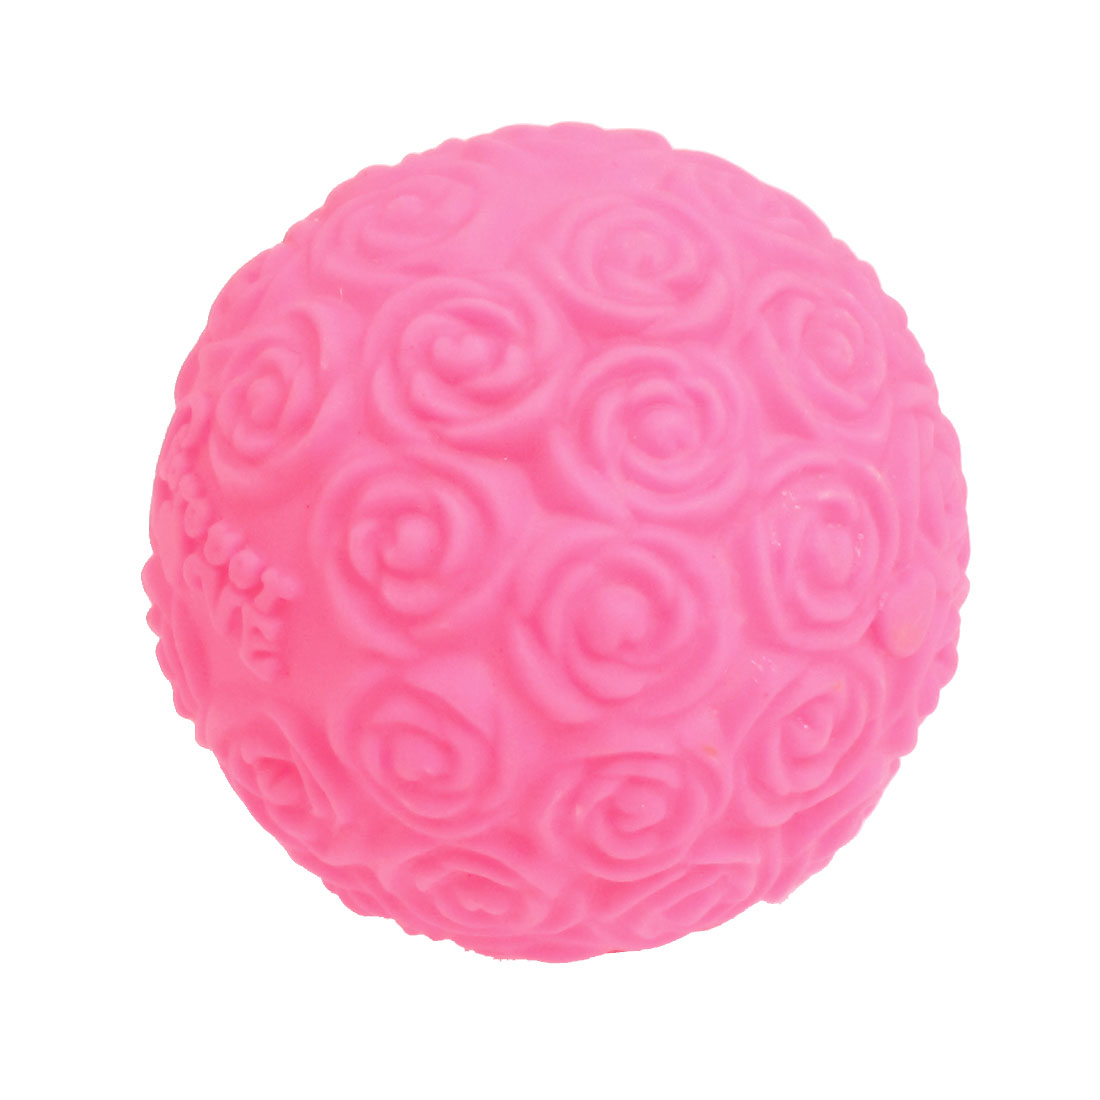 62mm Diameter Hot Pink Plastic Housing Multicolor Changed Rose Ball LED Light